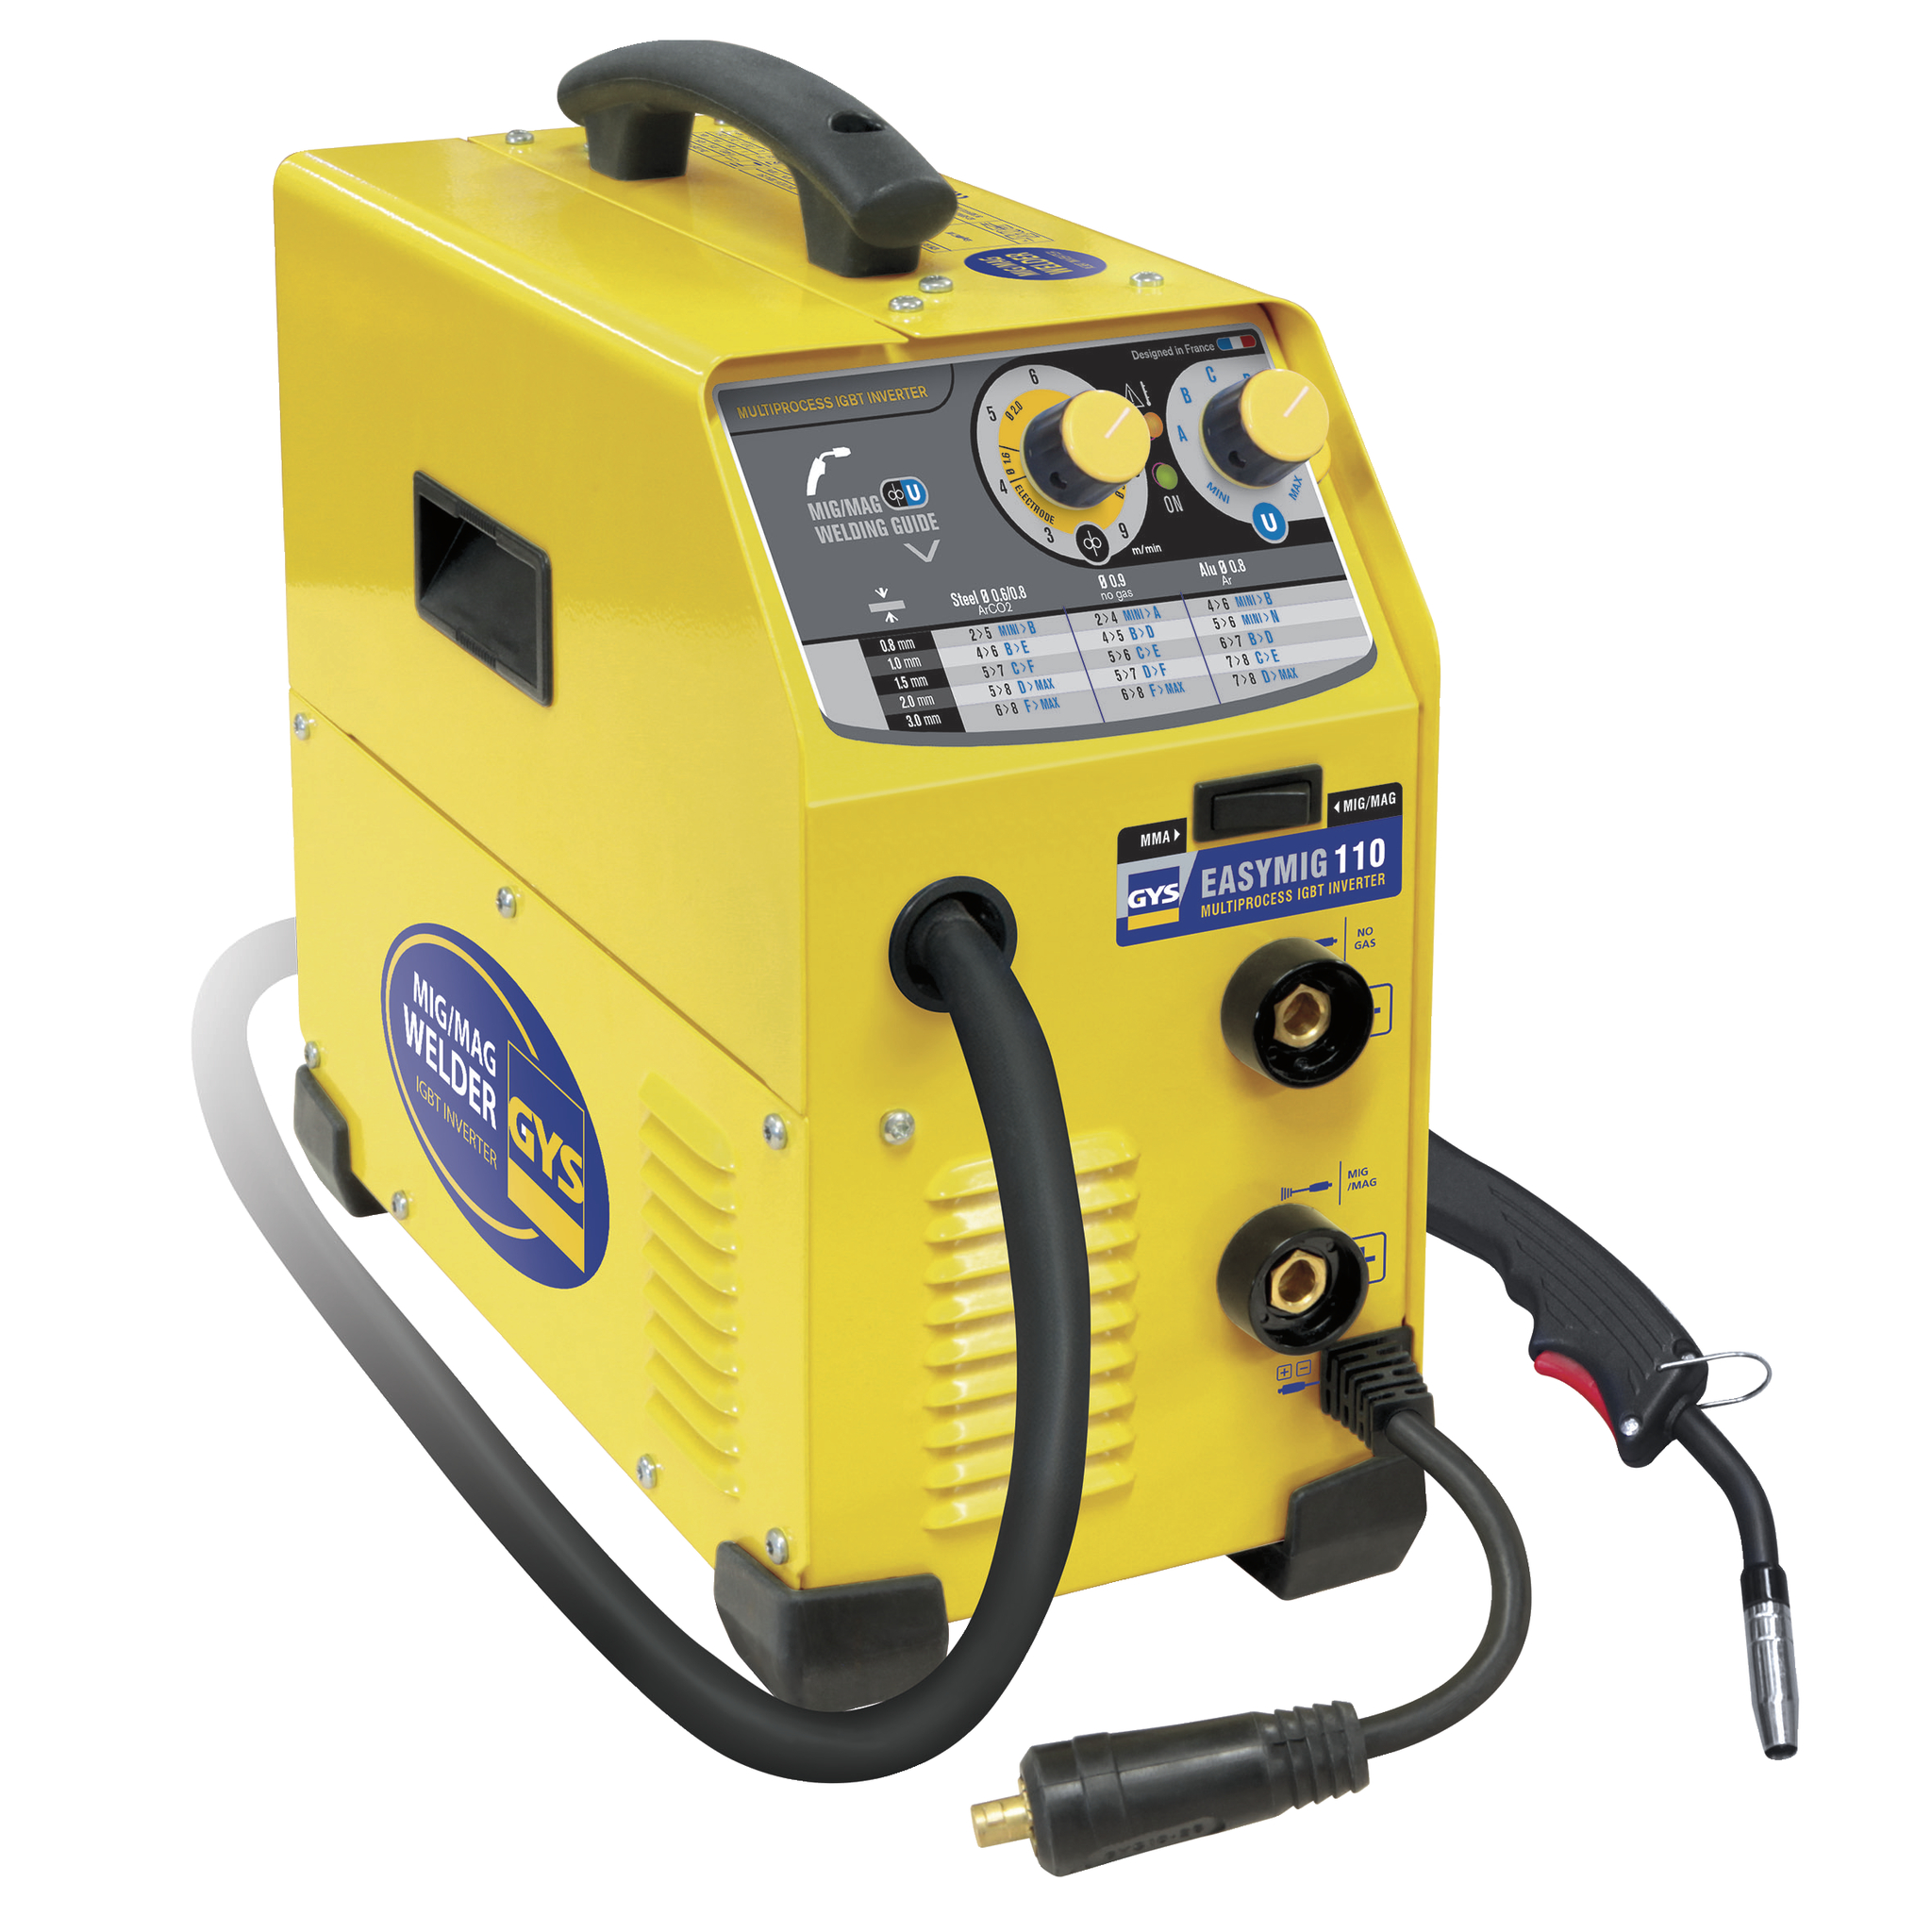 Gys Easymig 110 Inverter Mig Welder 240v 1ph R H Davey Welding Supplies Ltd